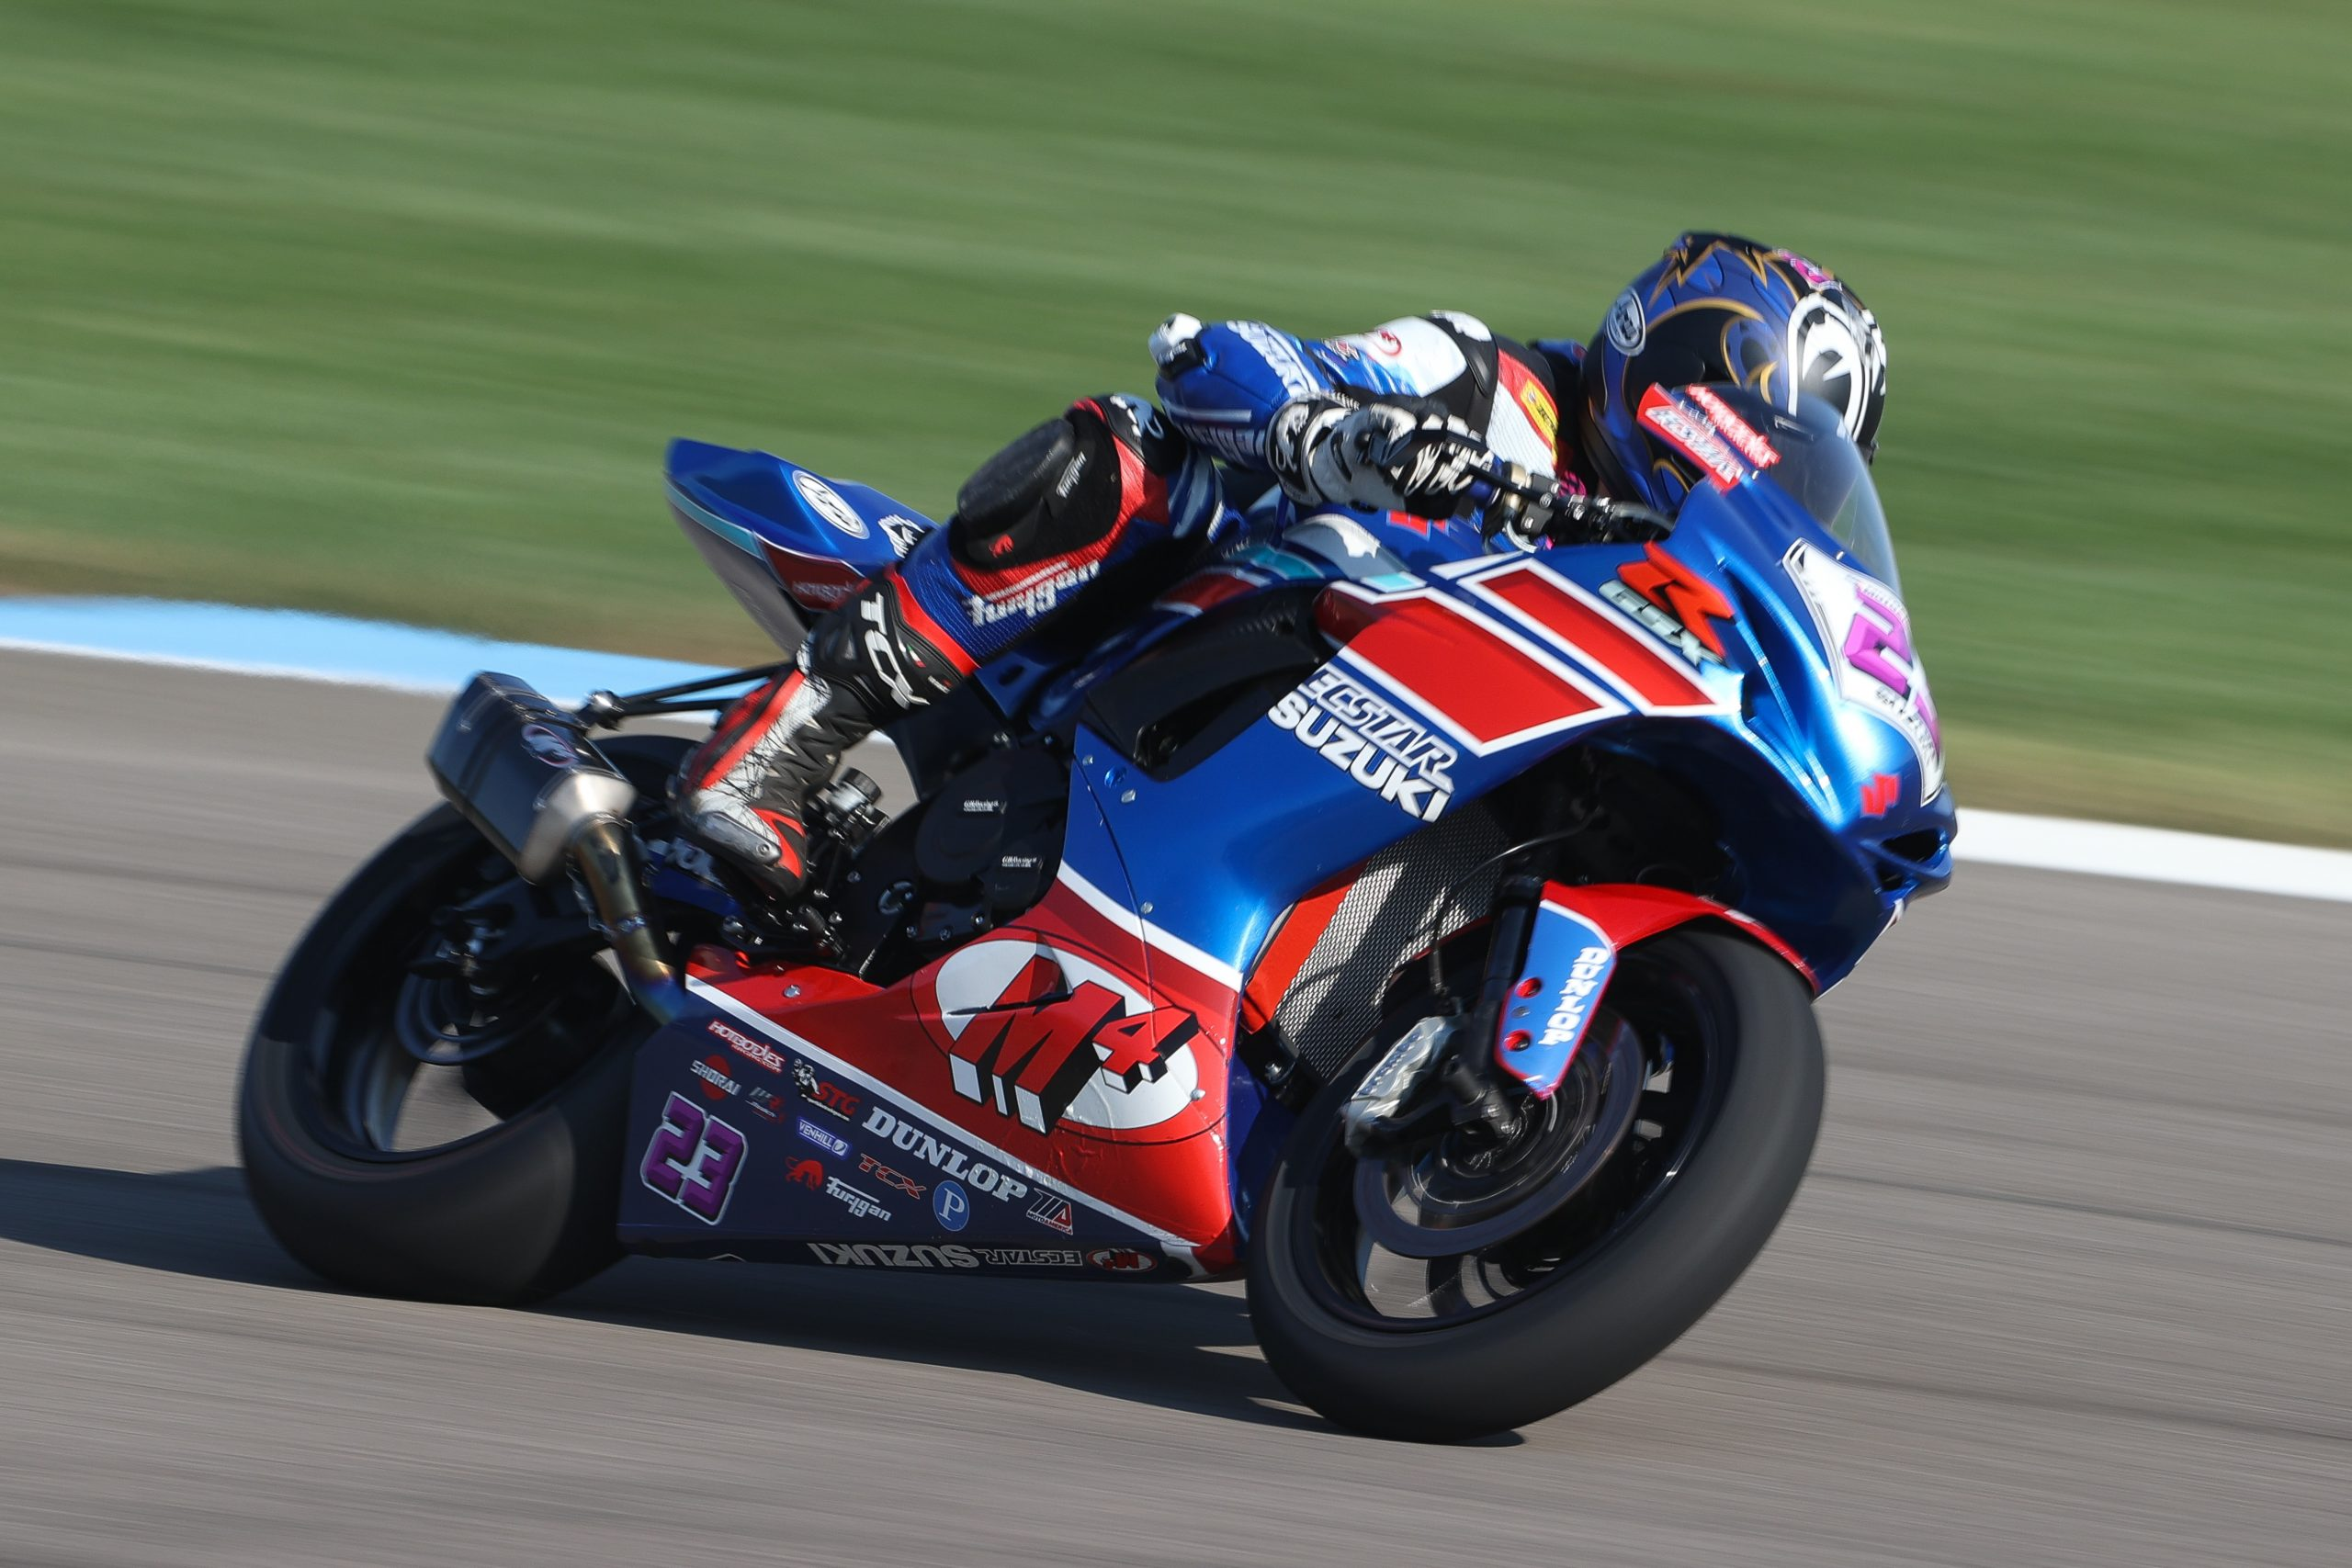 201012 Lucas Silva (#23) continued his streak of top-ten finishes on his GSX-R600 at Indy